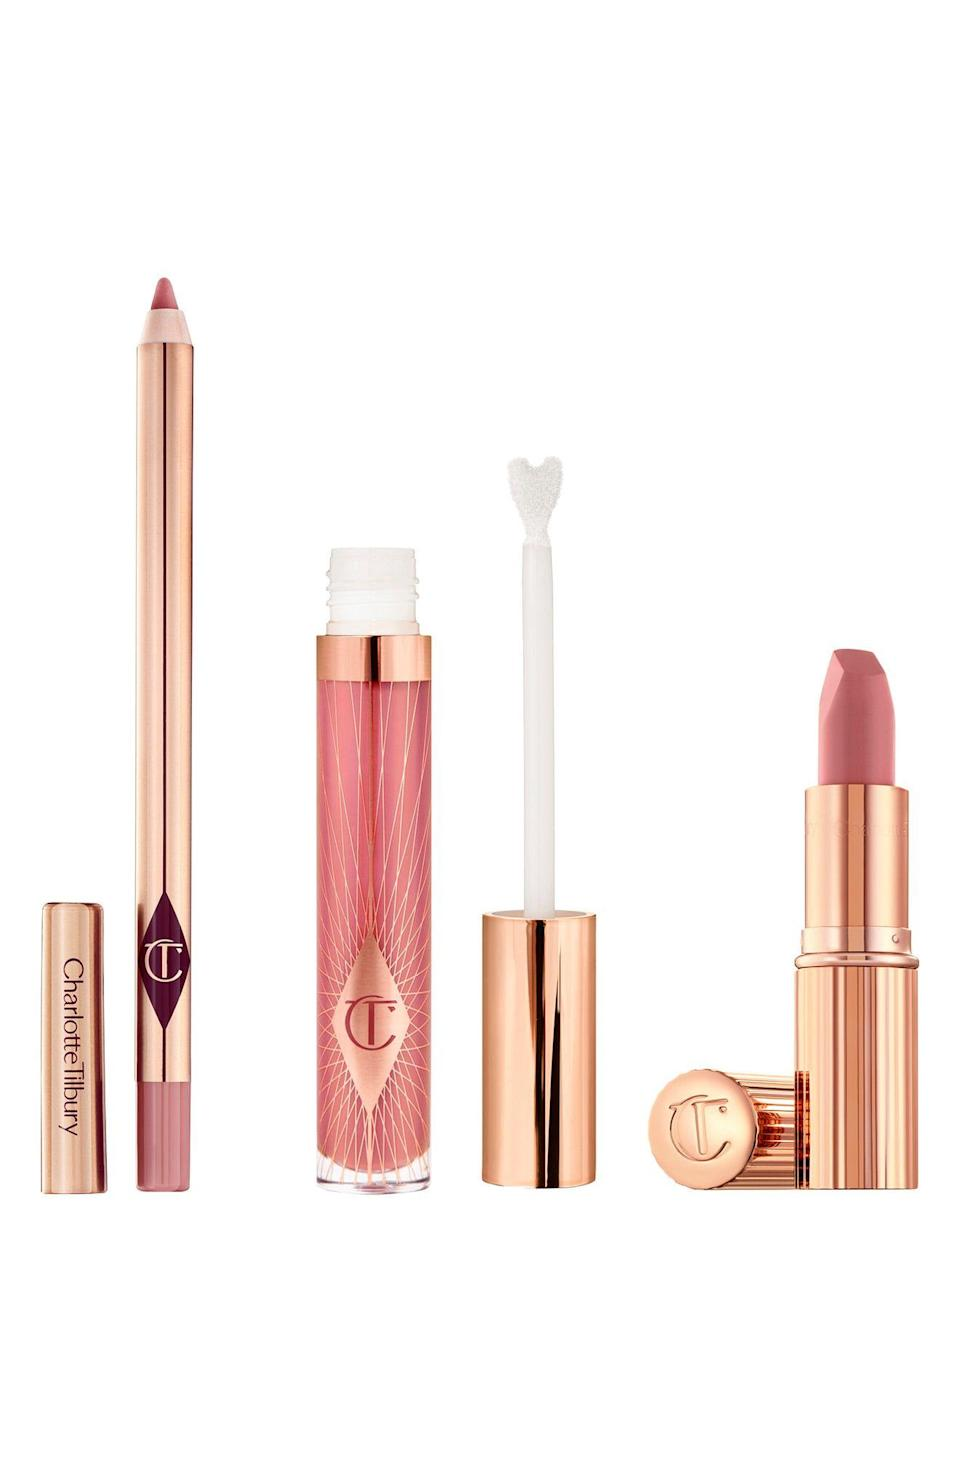 "<p><strong>CHARLOTTE TILBURY</strong></p><p>nordstrom.com</p><p><strong>$68.00</strong></p><p><a href=""https://go.redirectingat.com?id=74968X1596630&url=https%3A%2F%2Fwww.nordstrom.com%2Fs%2Fcharlotte-tilbury-pillow-talk-lip-secrets-set-91-value%2F5585559&sref=https%3A%2F%2Fwww.townandcountrymag.com%2Fstyle%2Fbeauty-products%2Fg33595678%2Fbeauty-buys-to-pick-up-during-the-2020-nordstrom-anniversary-sale%2F"" rel=""nofollow noopener"" target=""_blank"" data-ylk=""slk:Shop Now"" class=""link rapid-noclick-resp"">Shop Now</a></p><p><em>Value: $91</em></p>"